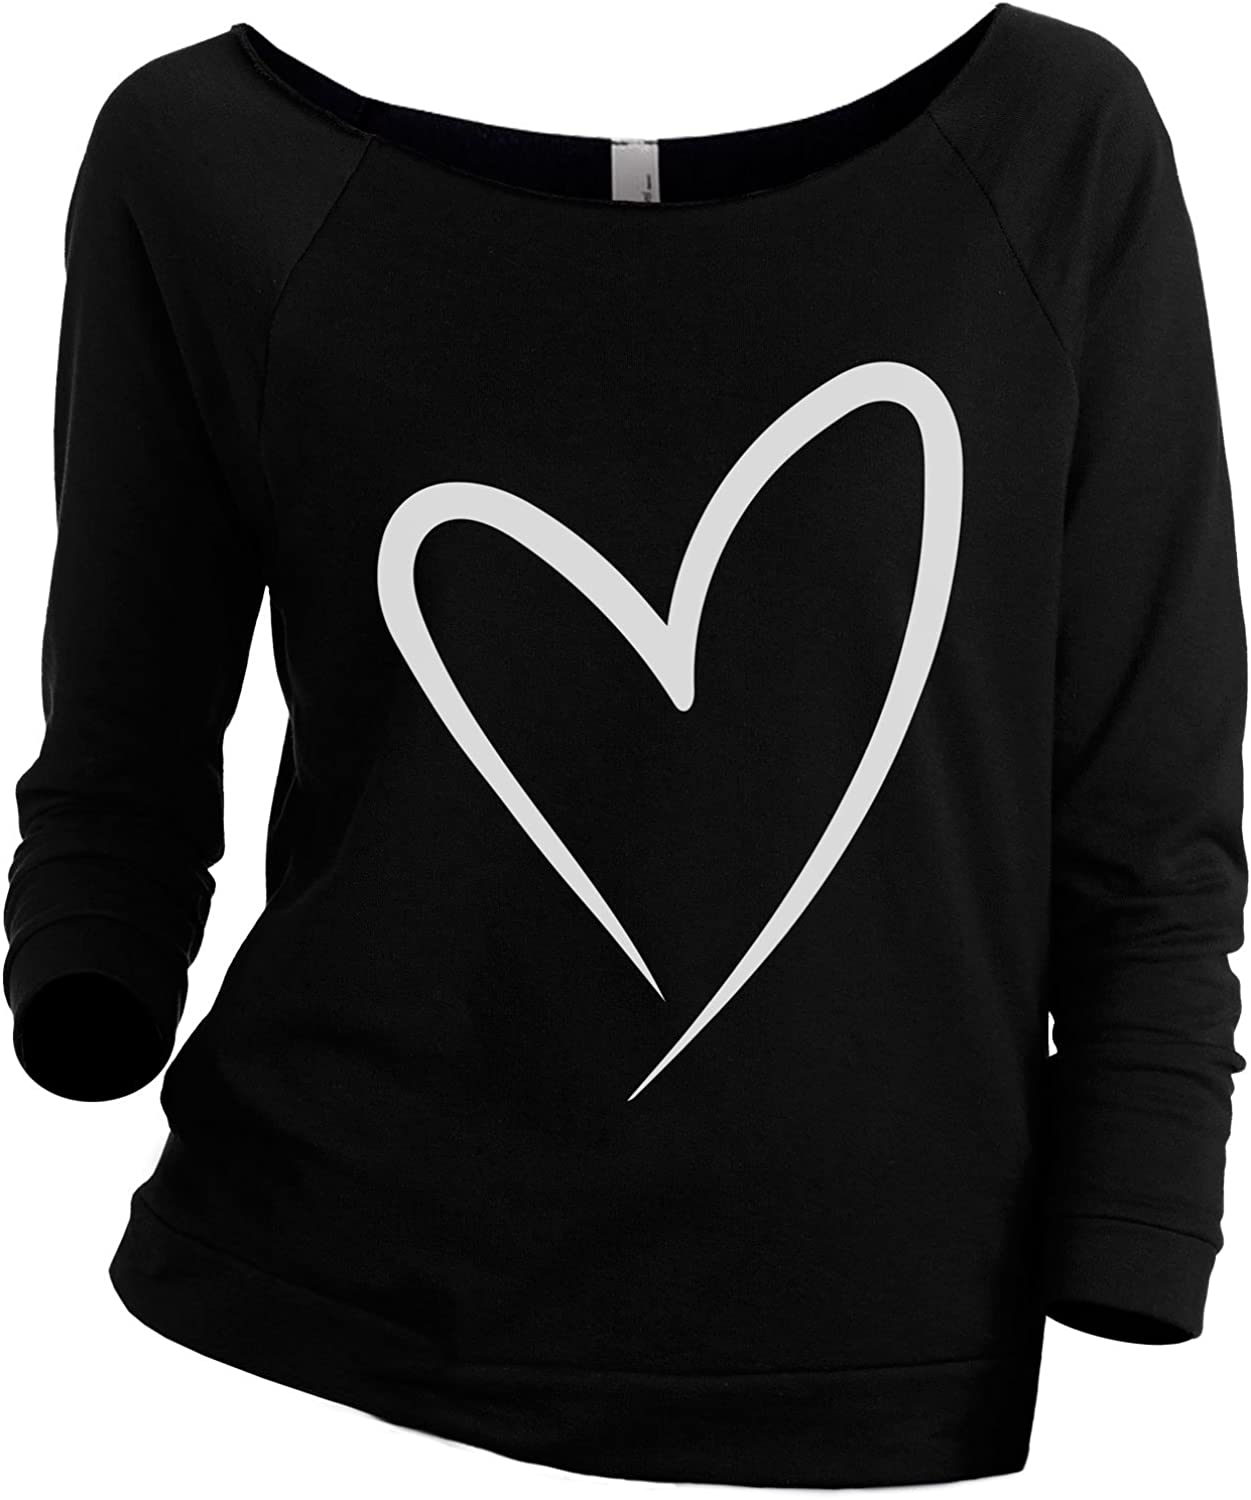 HeartBreath Off-the-Shoulder Insanely Comfy Slouchy Long Sleeve Tee